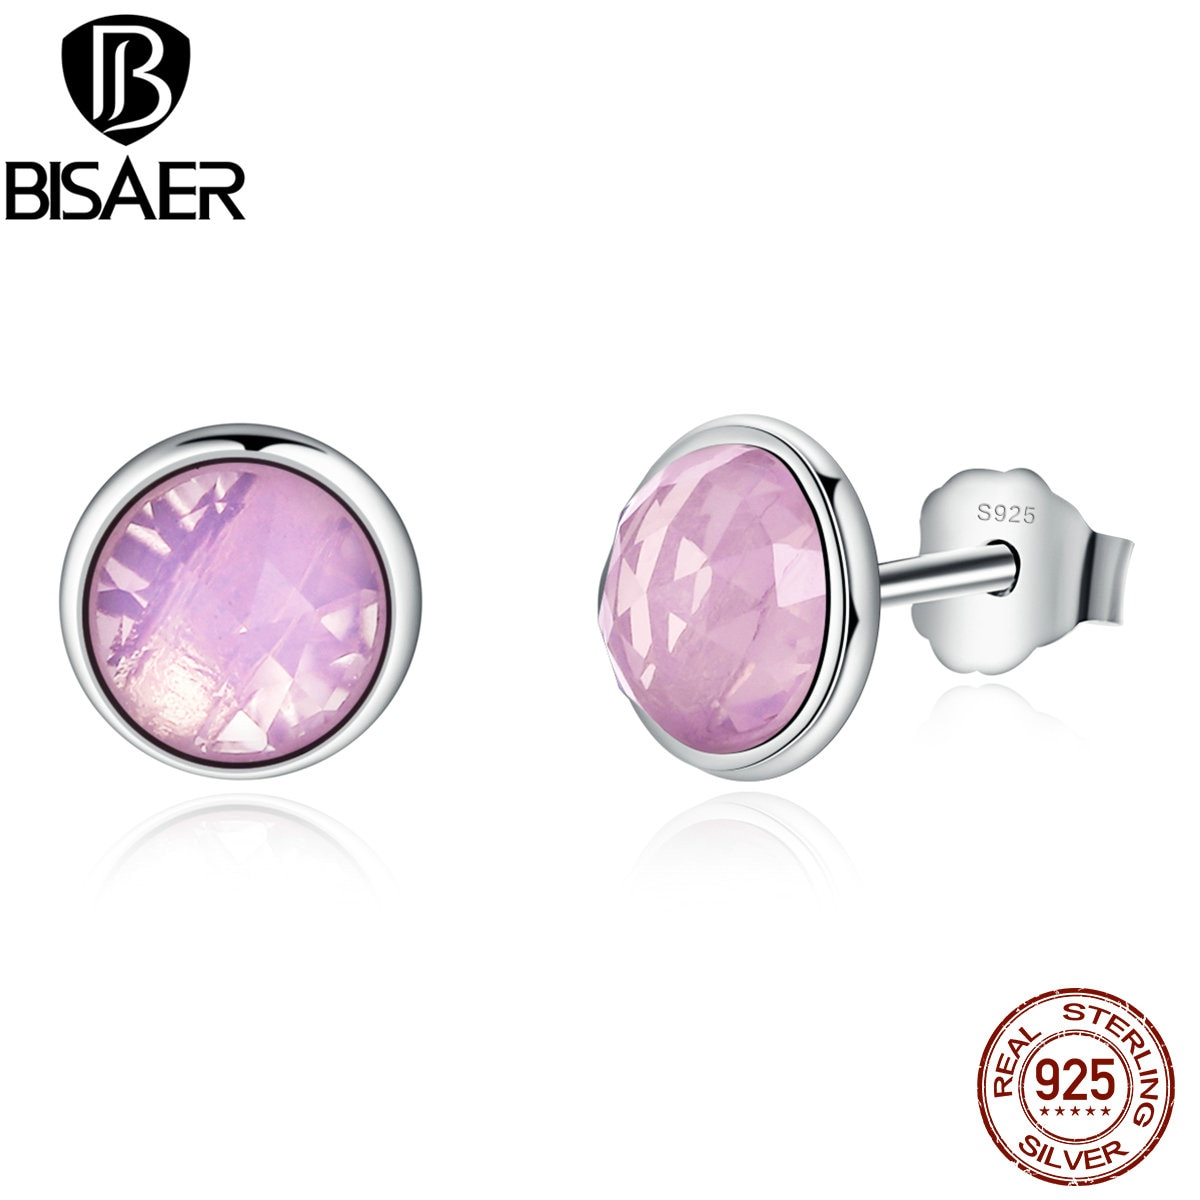 Genuine 925 Sterling Silver Earrings October Droplets,opalescent With Regard To 2019 Opalescent Pink Crystal October Droplet Pendant Necklaces (Gallery 14 of 25)